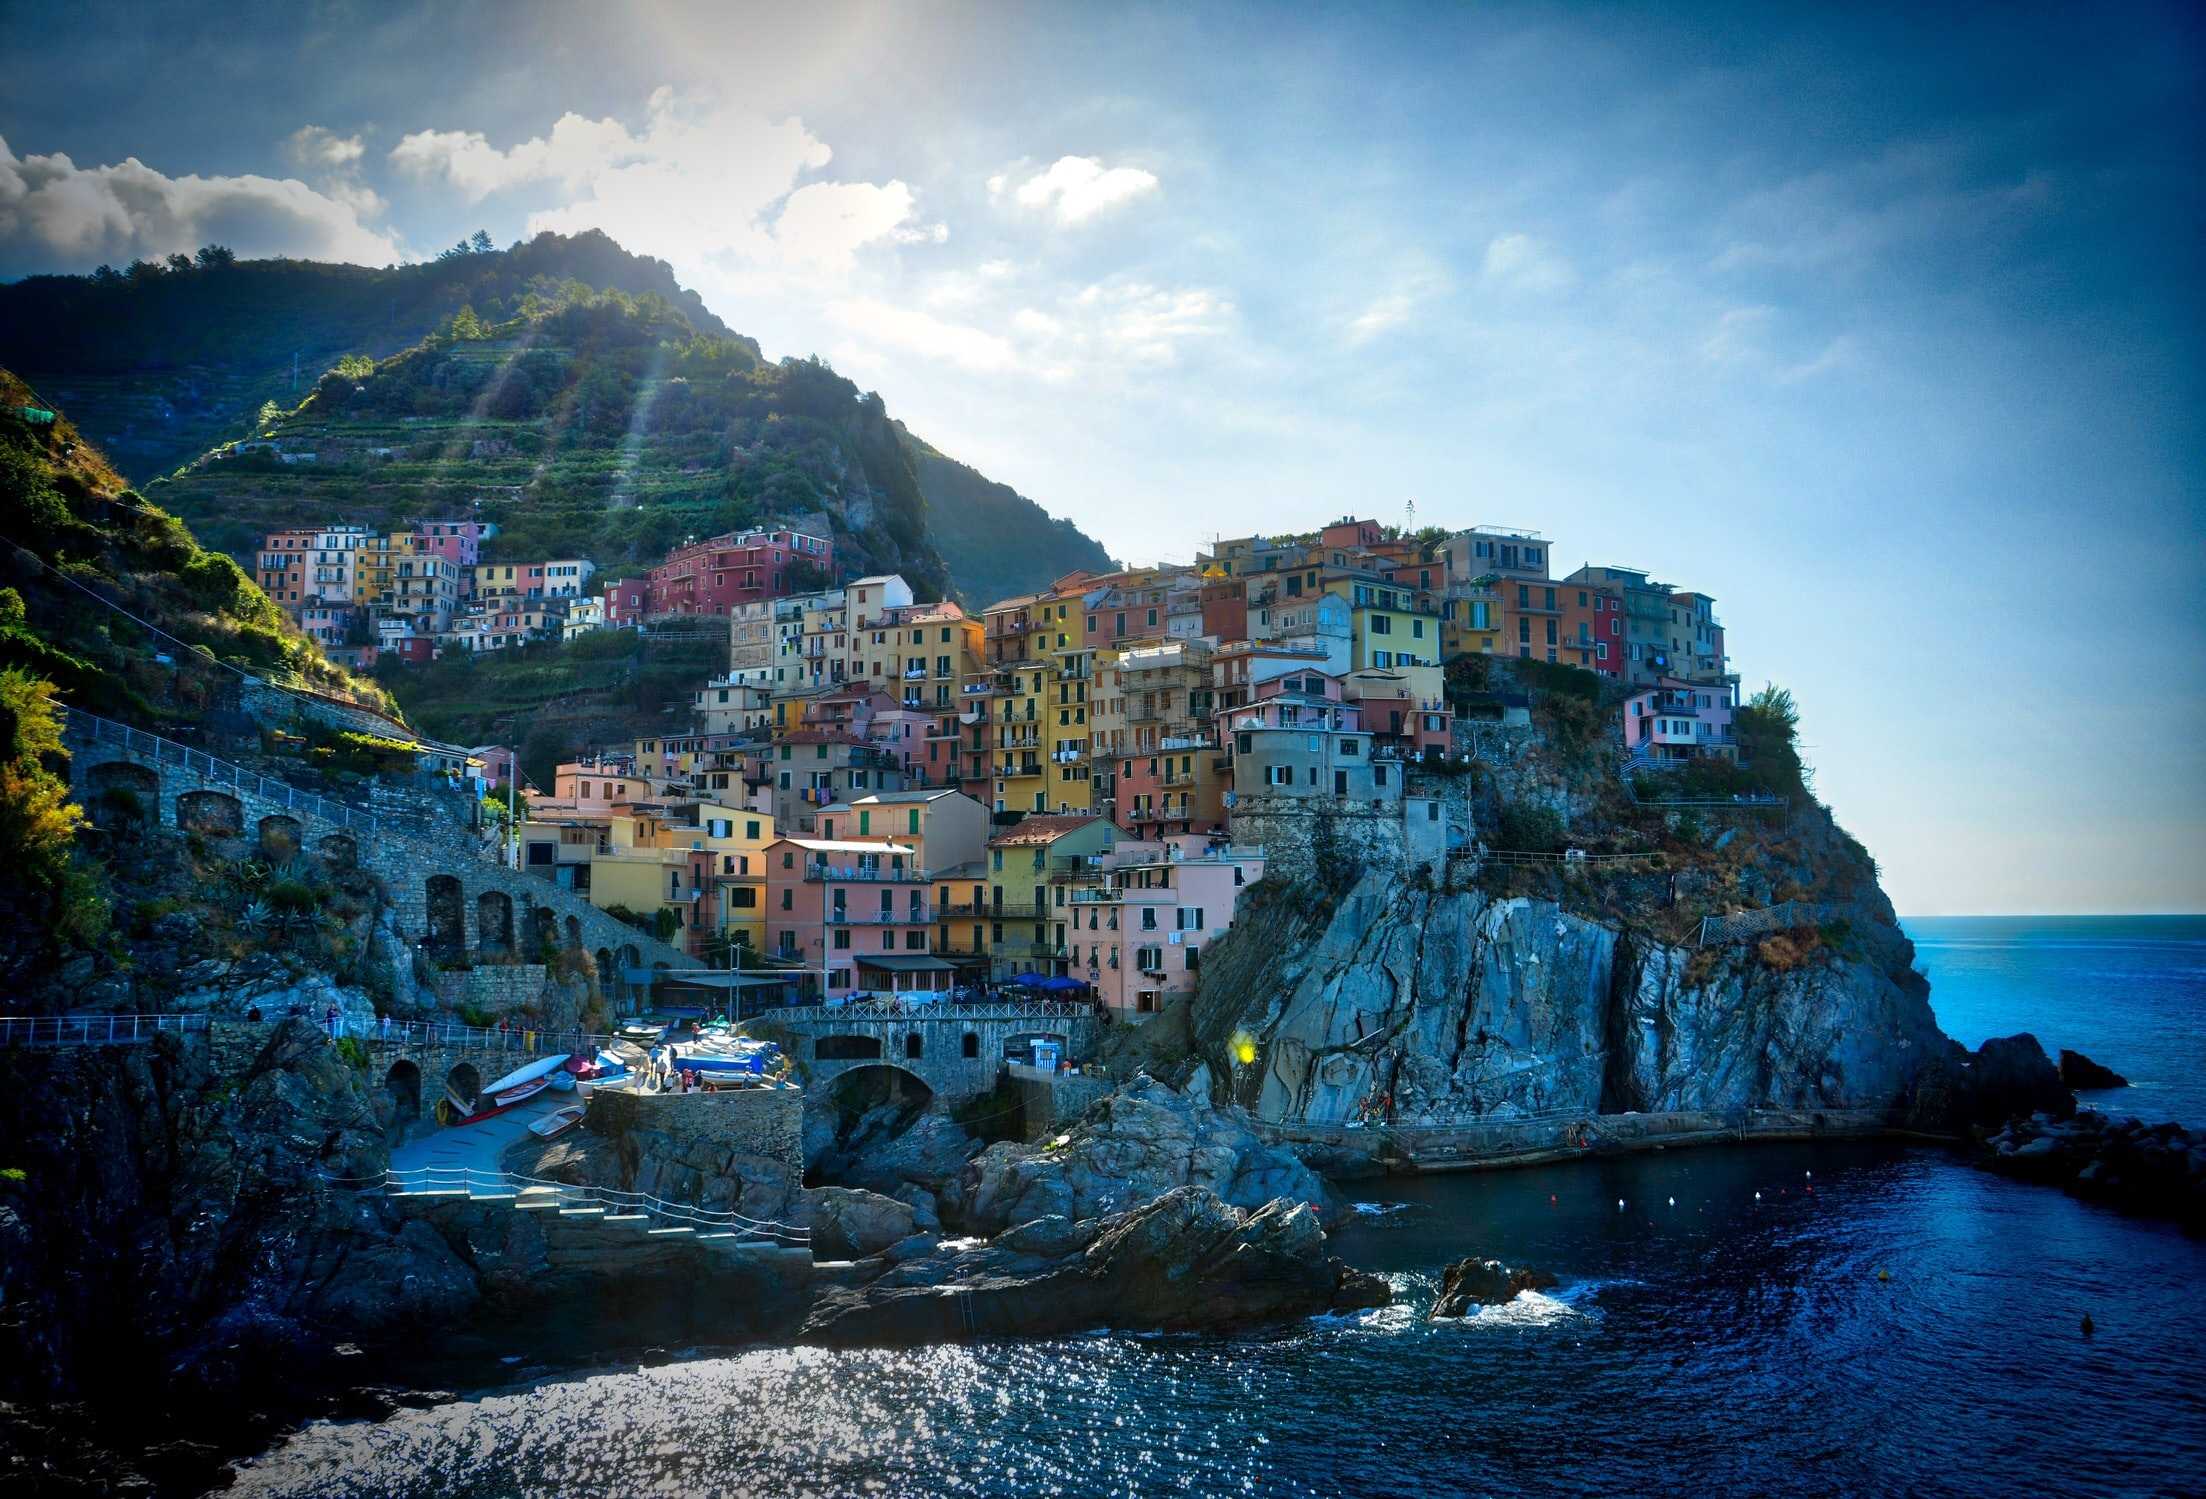 seaside town on cliff during daytime